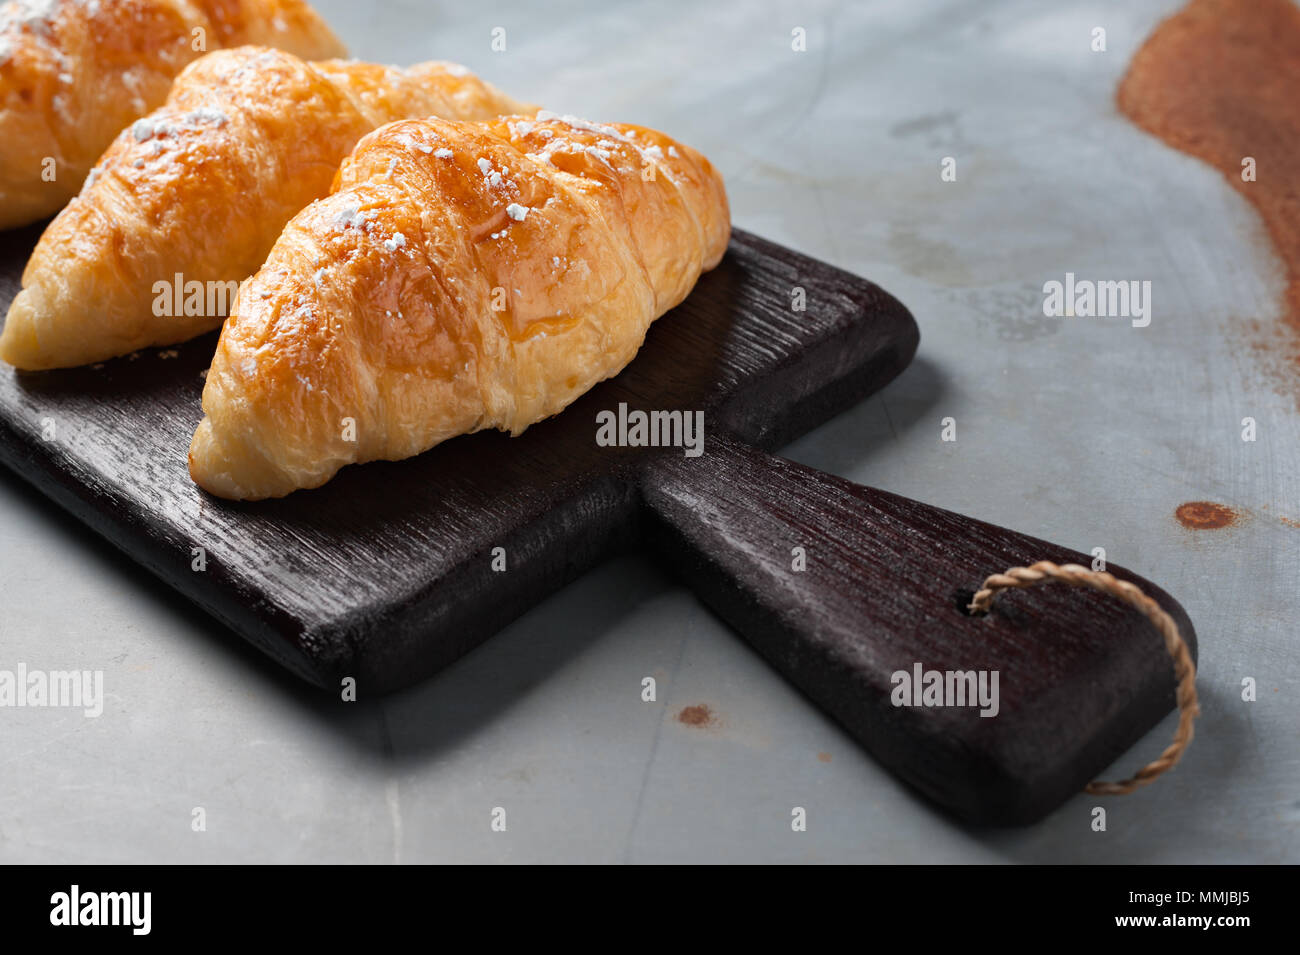 Fresh baked croissant sprinkled with powdered sugar on table - Stock Image